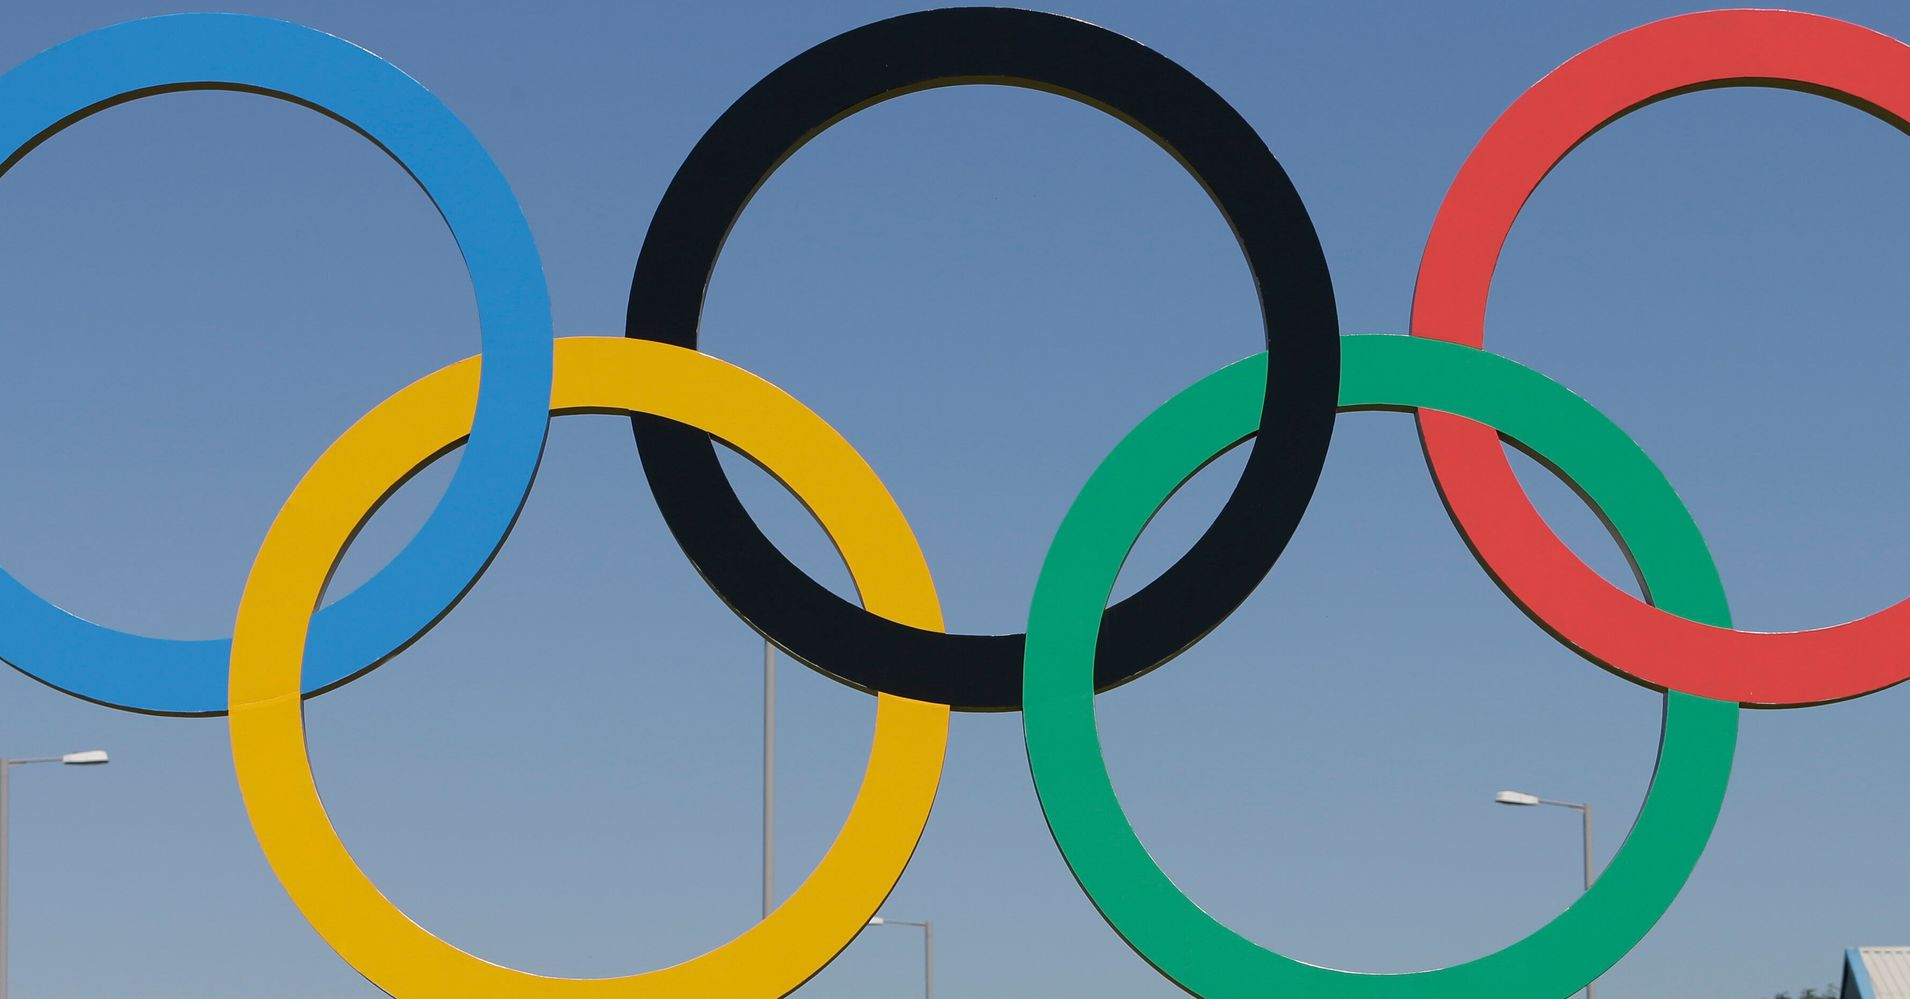 Italy To Host Winter Olympics In 2026